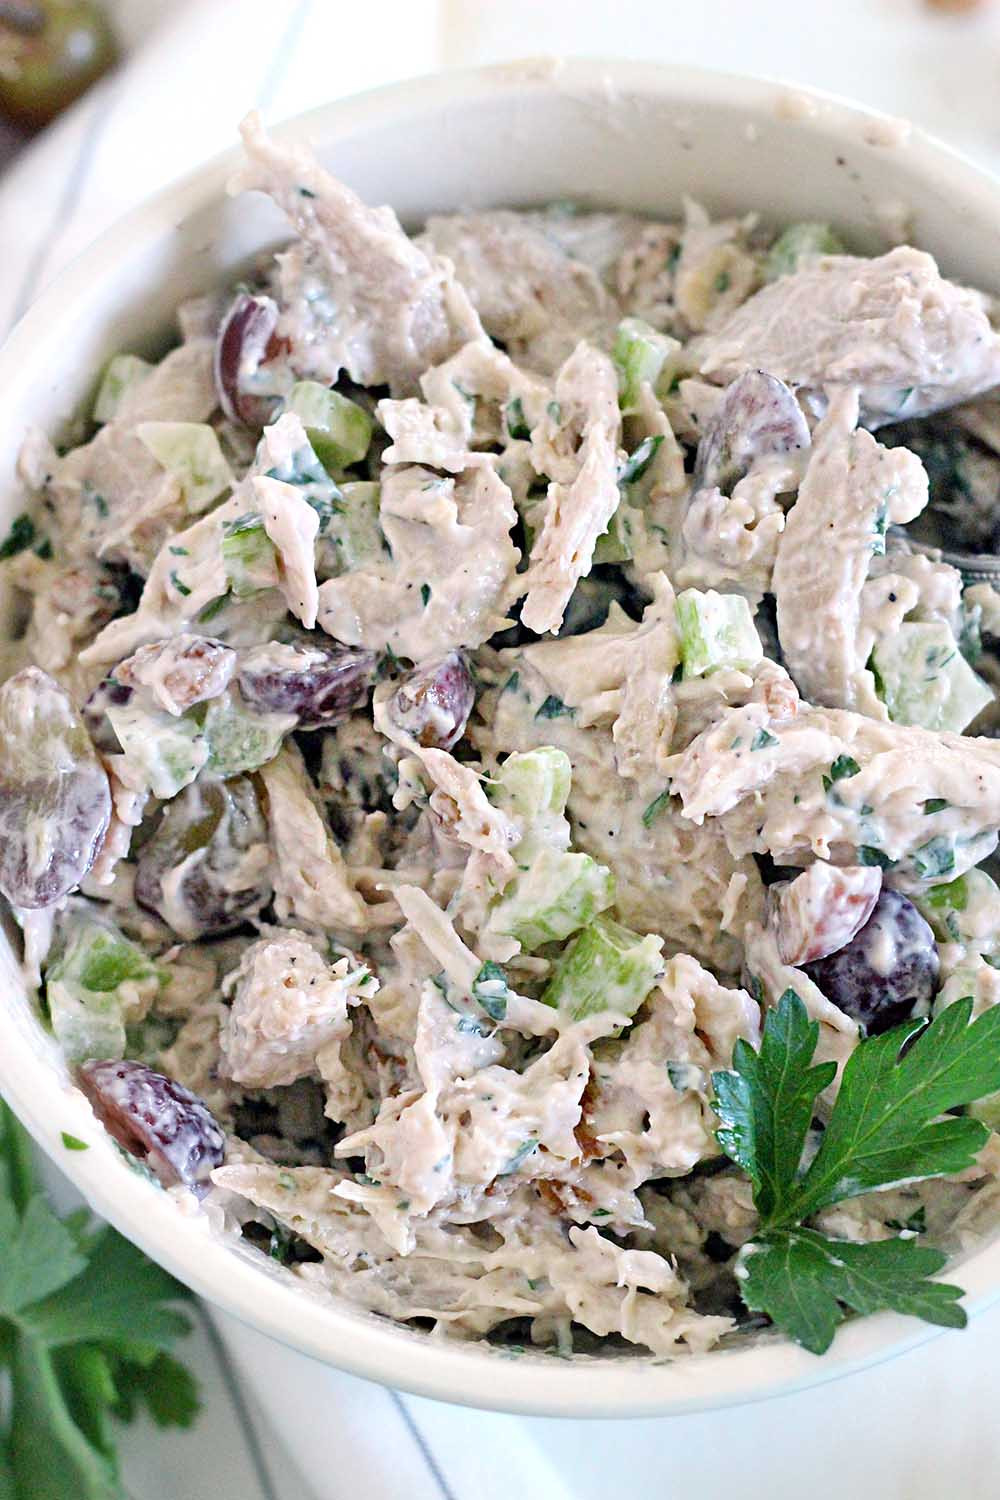 Chicken Salad With Grapes Recipes  Awesome Chicken Salad with grapes and walnuts